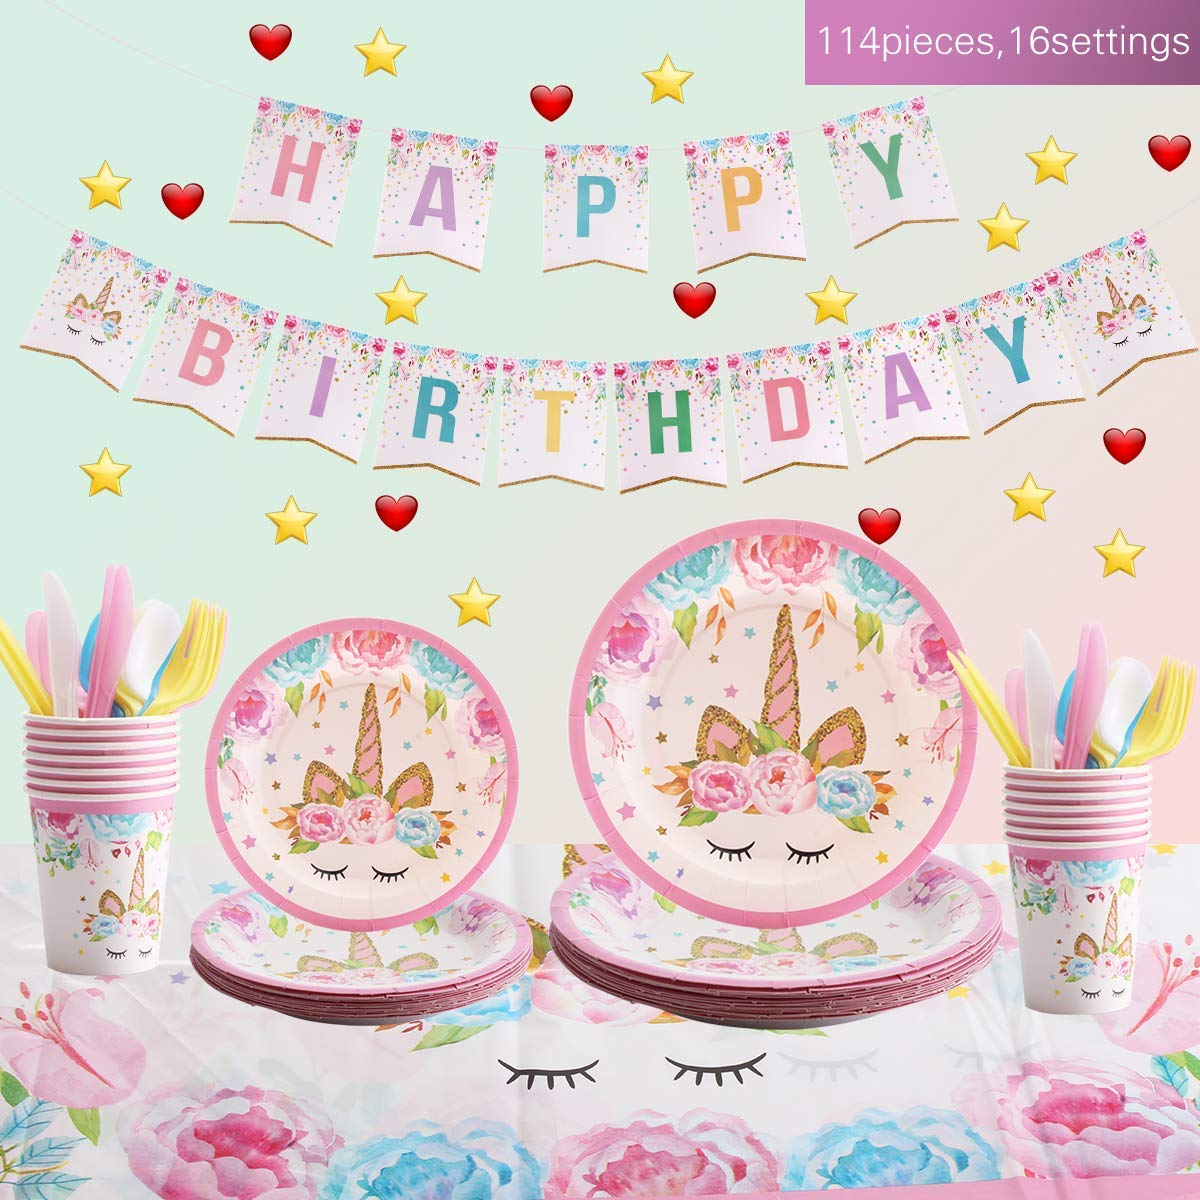 FOCCTS Unicorn Party Supplies Set - Serves 16 - Unicorn Decorations and Tableware - Birthday Party Favors Decorations for Kids Girls - Including Plates, Unicorn Tablecloth, Cups, Cutlery Set, Napkins Set - 114 Pieces